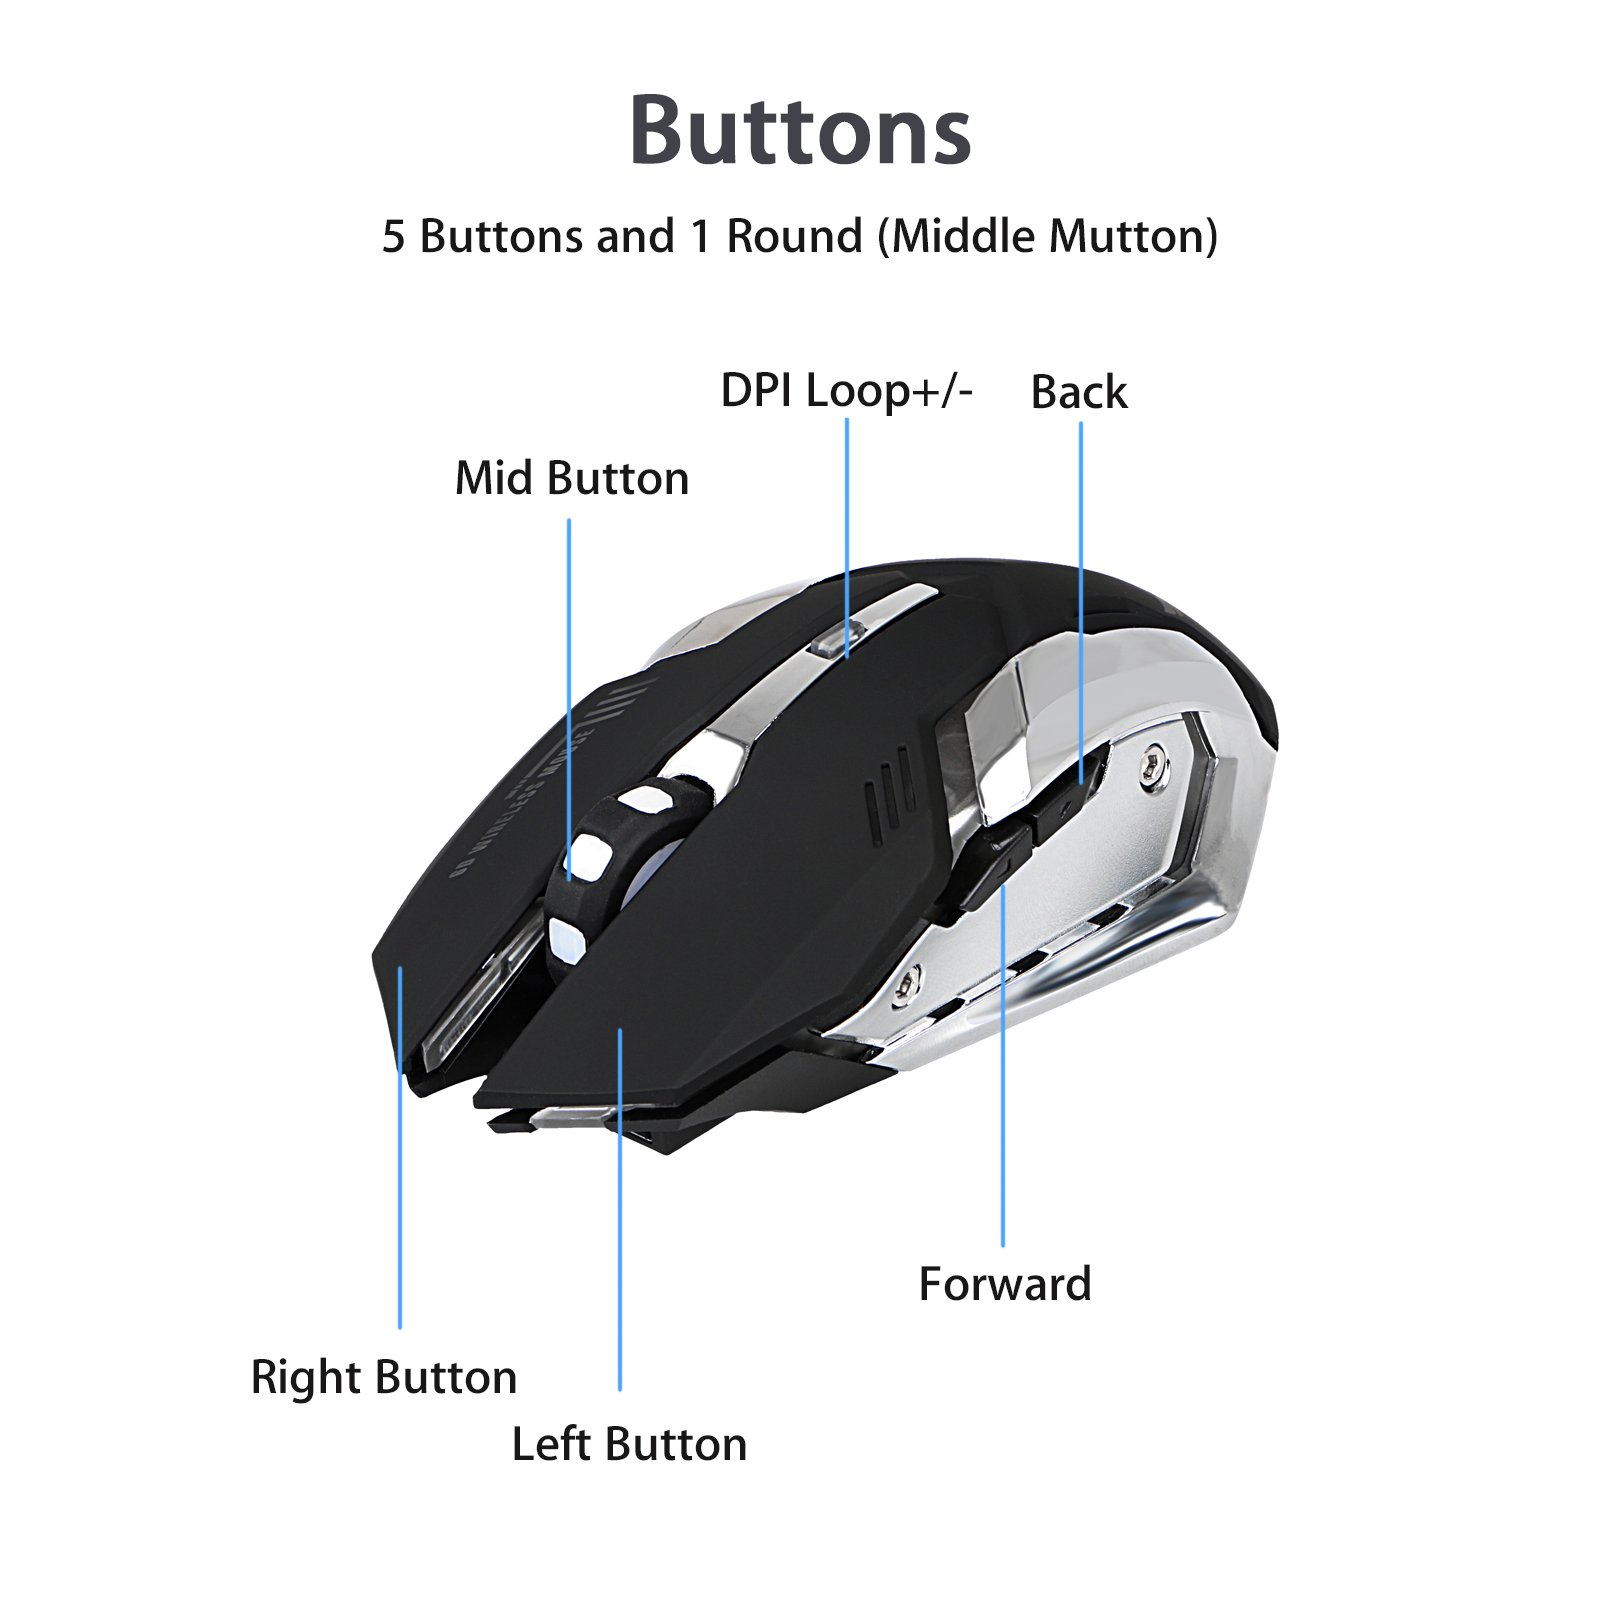 Wireless Optical Gaming Mouse with USB Receiver LinkStyle Color Changing Wireless Laptop Mouse, Rechargeable Game Mice with 4 Adjustable CPI Levels for PC, Laptop, Computer, Macbook & Gaming Players by LinkStyle (Image #3)